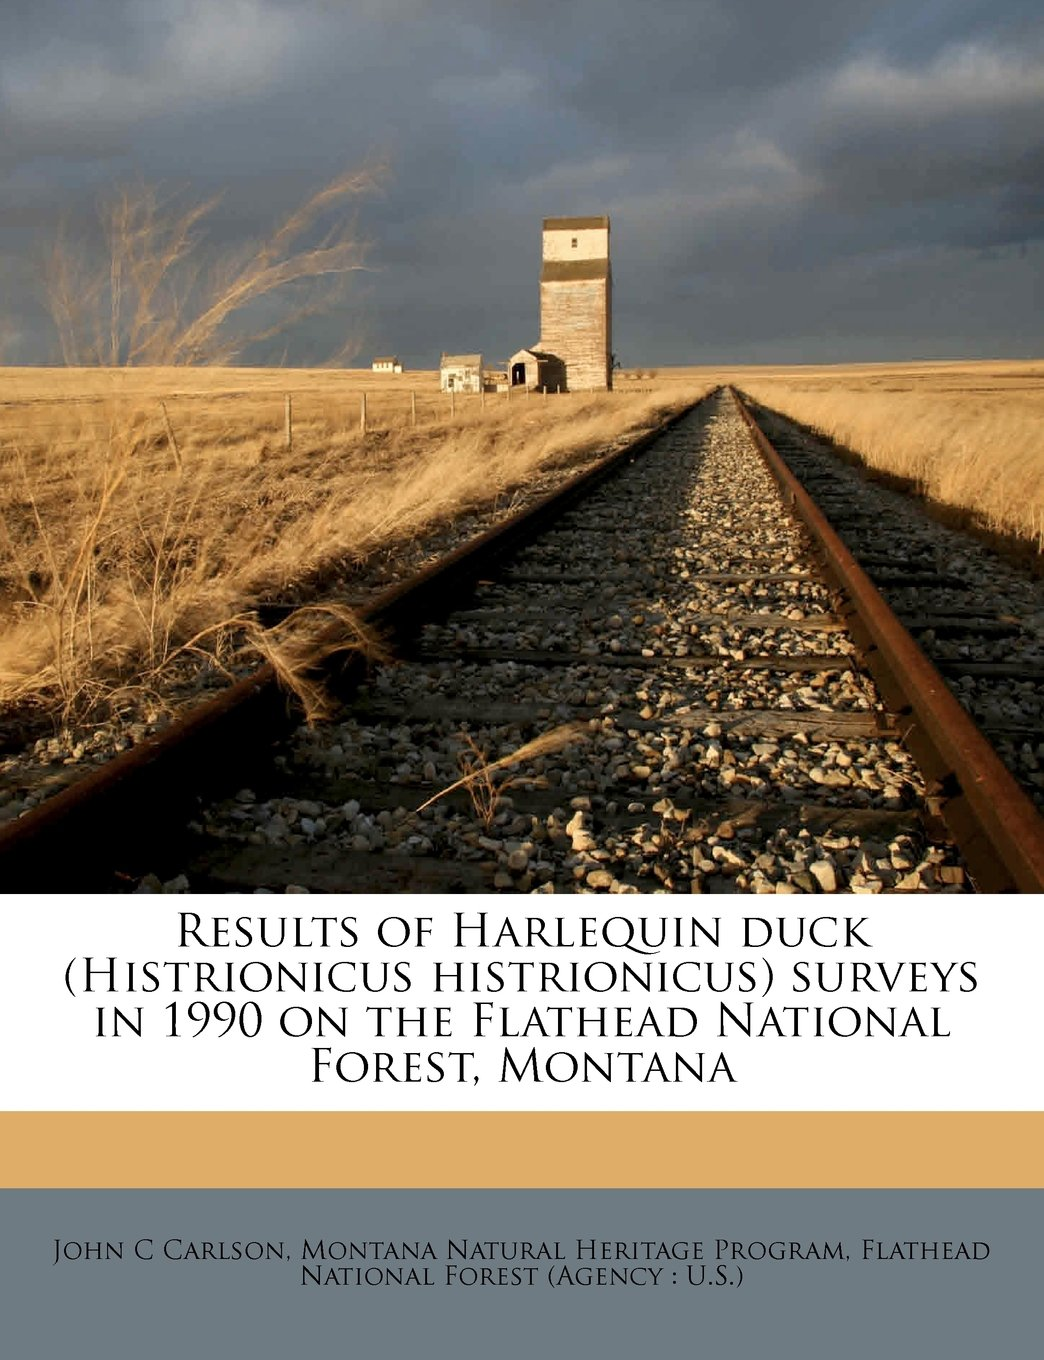 Results of Harlequin duck (Histrionicus histrionicus) surveys in 1990 on the Flathead National Forest, Montana Volume 1990 PDF